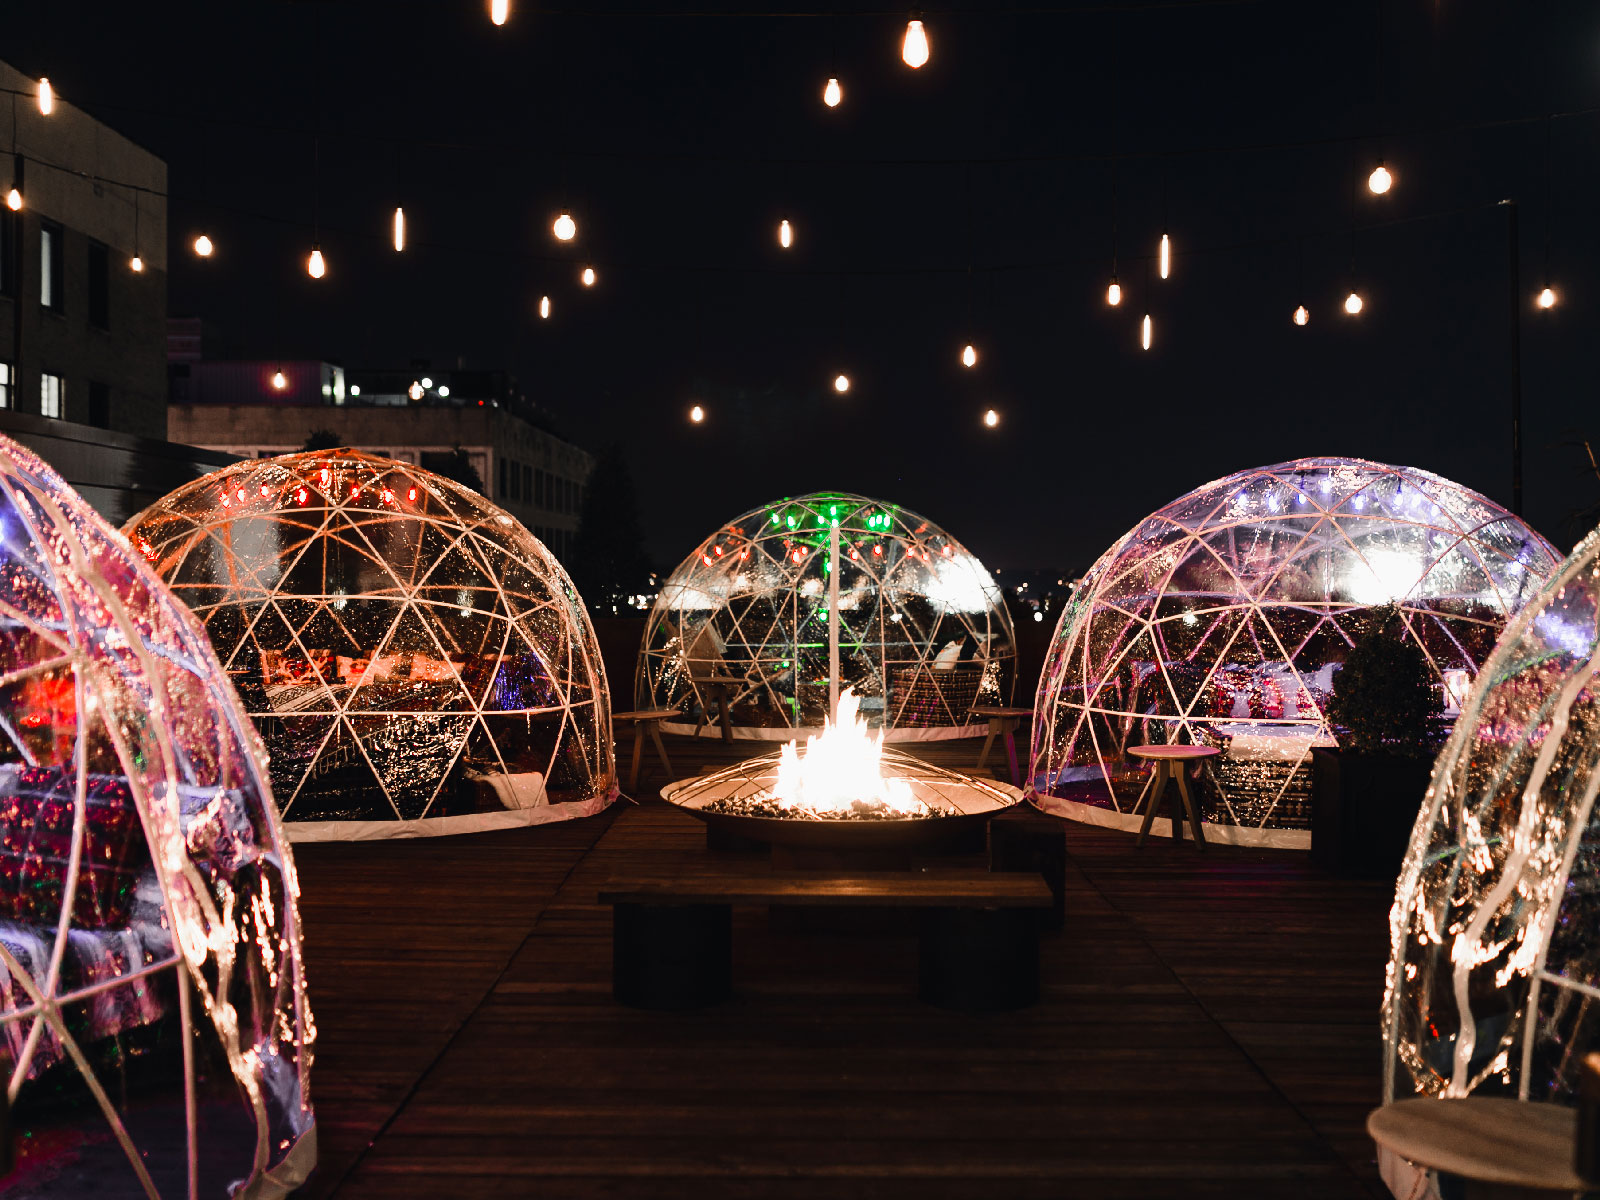 Bobby Hotel Rooftop Igloos